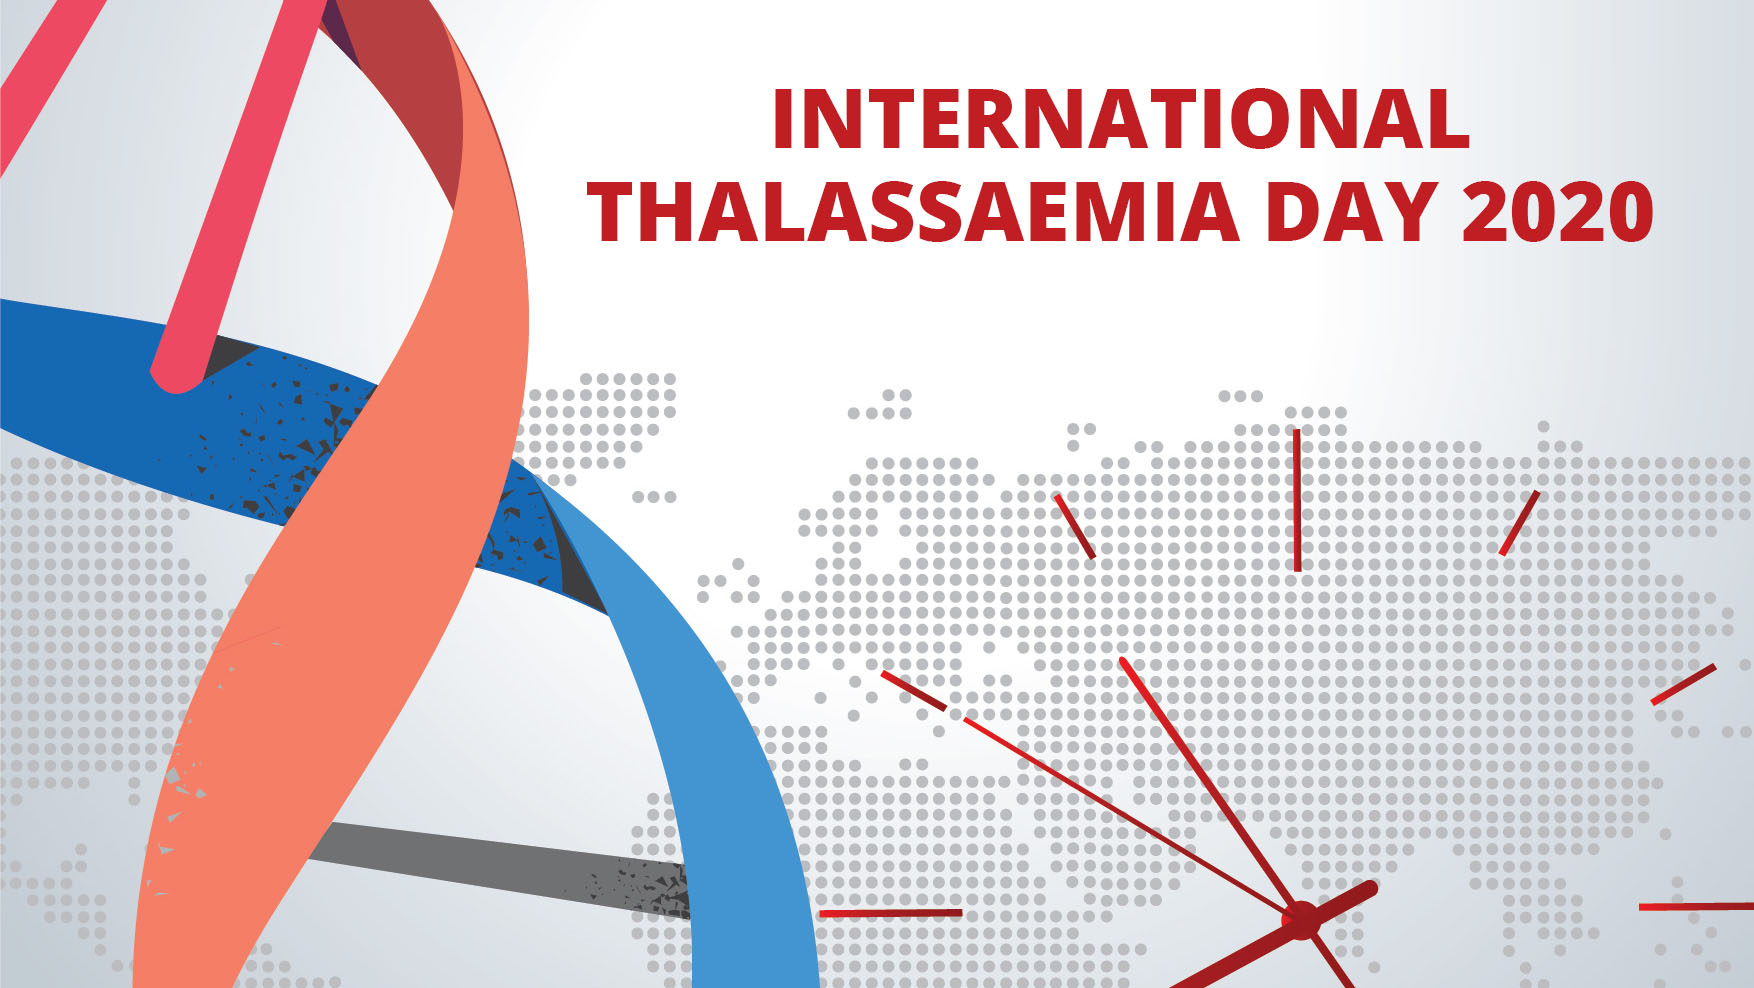 Photo of International Thalassaemia Day 2020